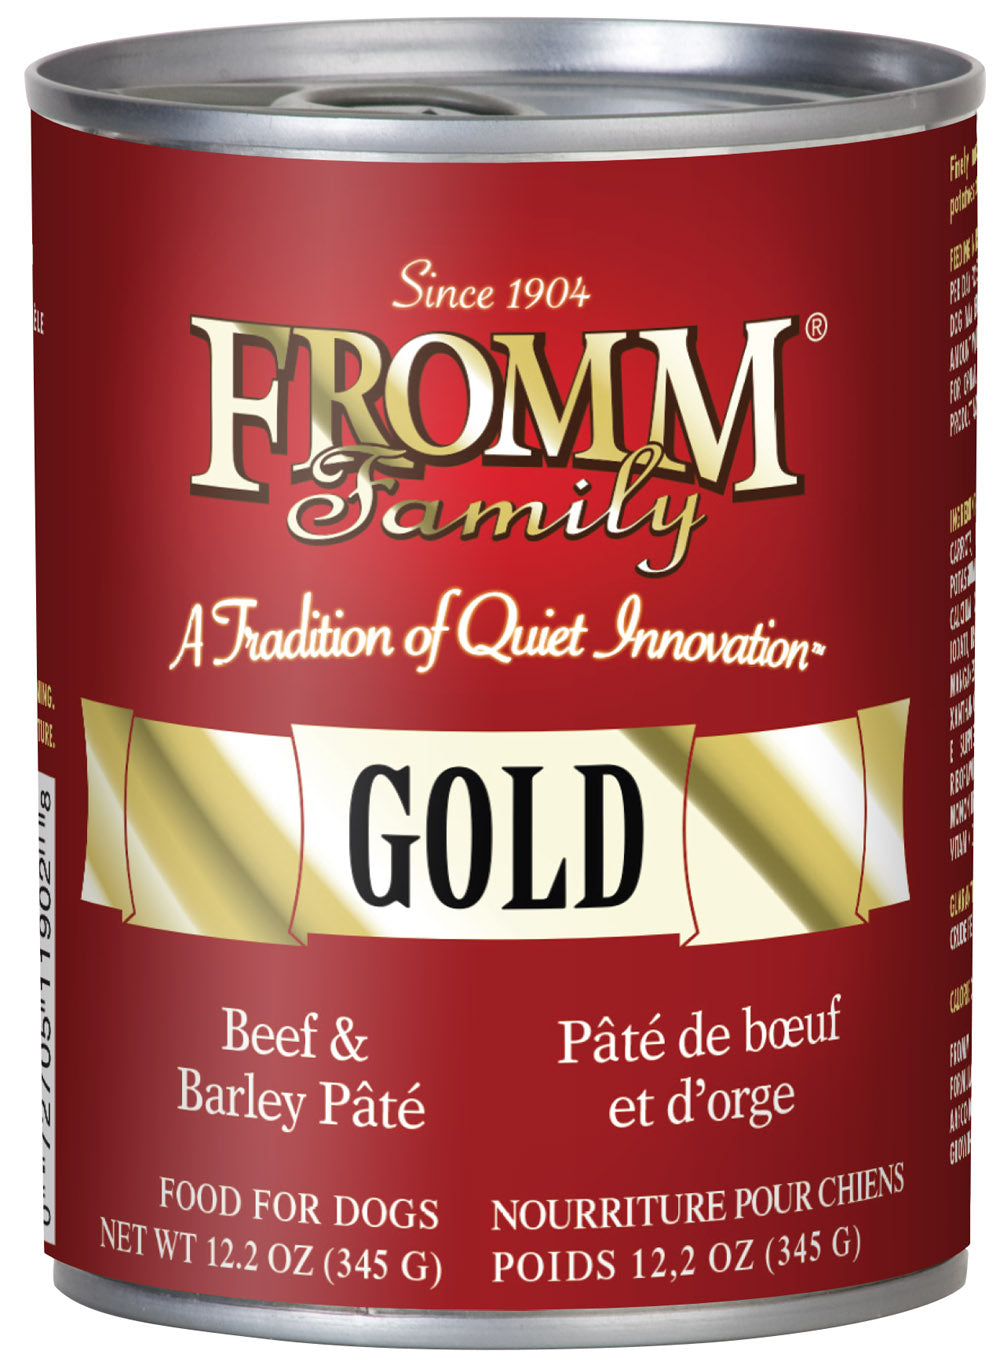 Fromm Gold Beef and Barley Pate Canned Dog Food - NJ Pet Supply